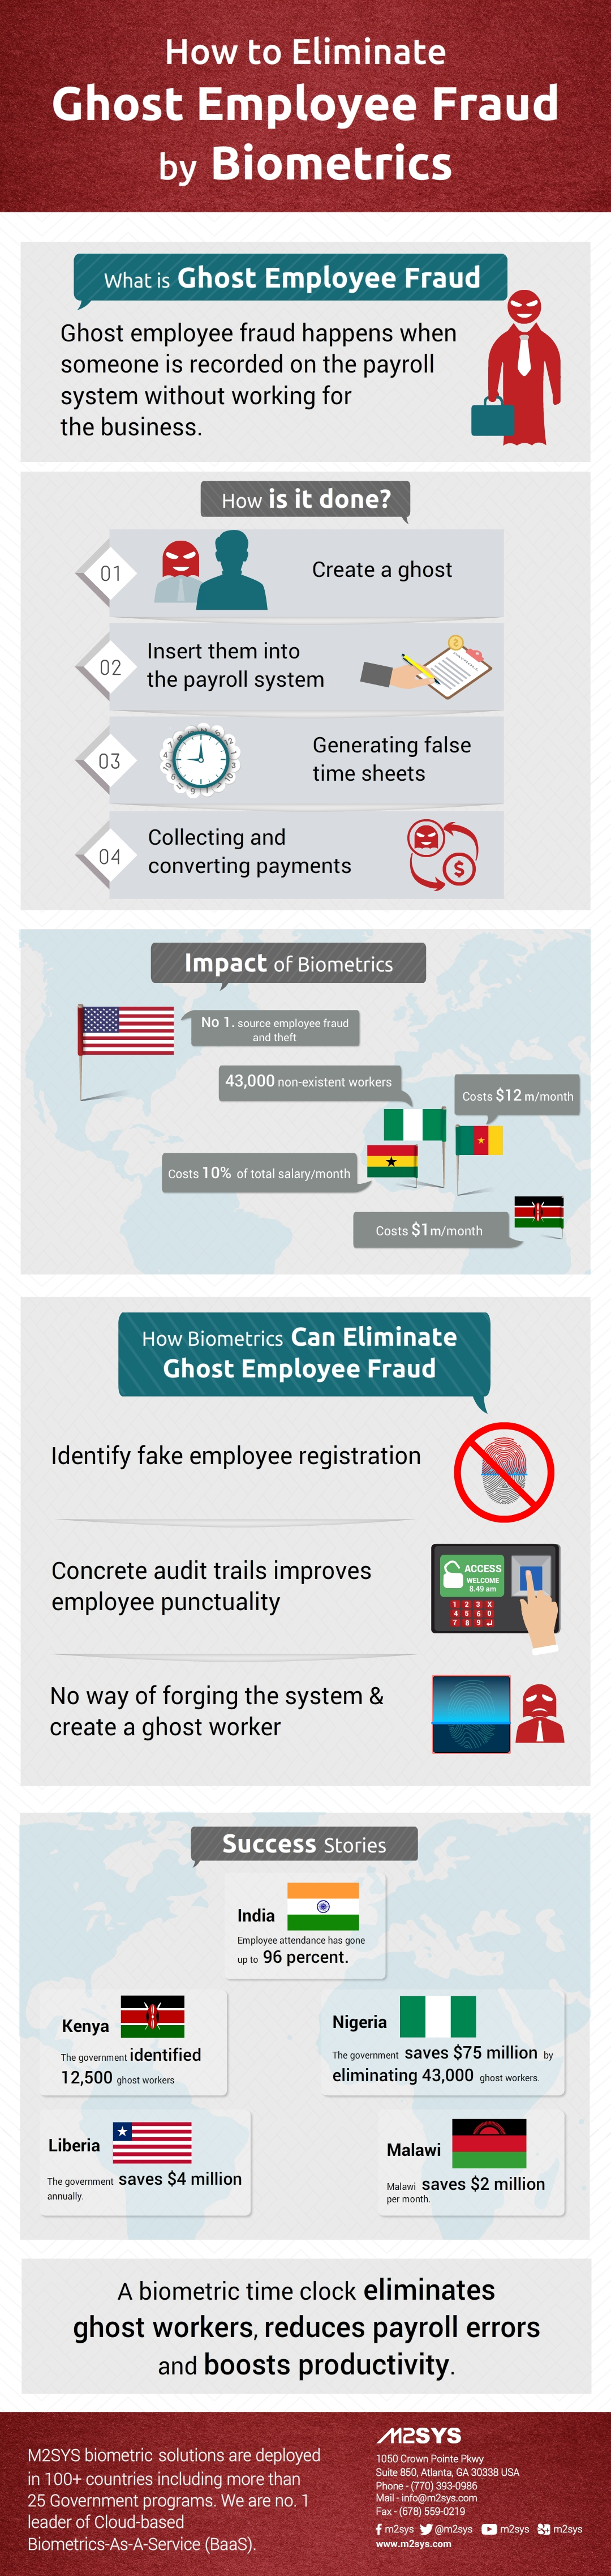 how-to-eliminate-ghost-employee-fraud-by-biometrics